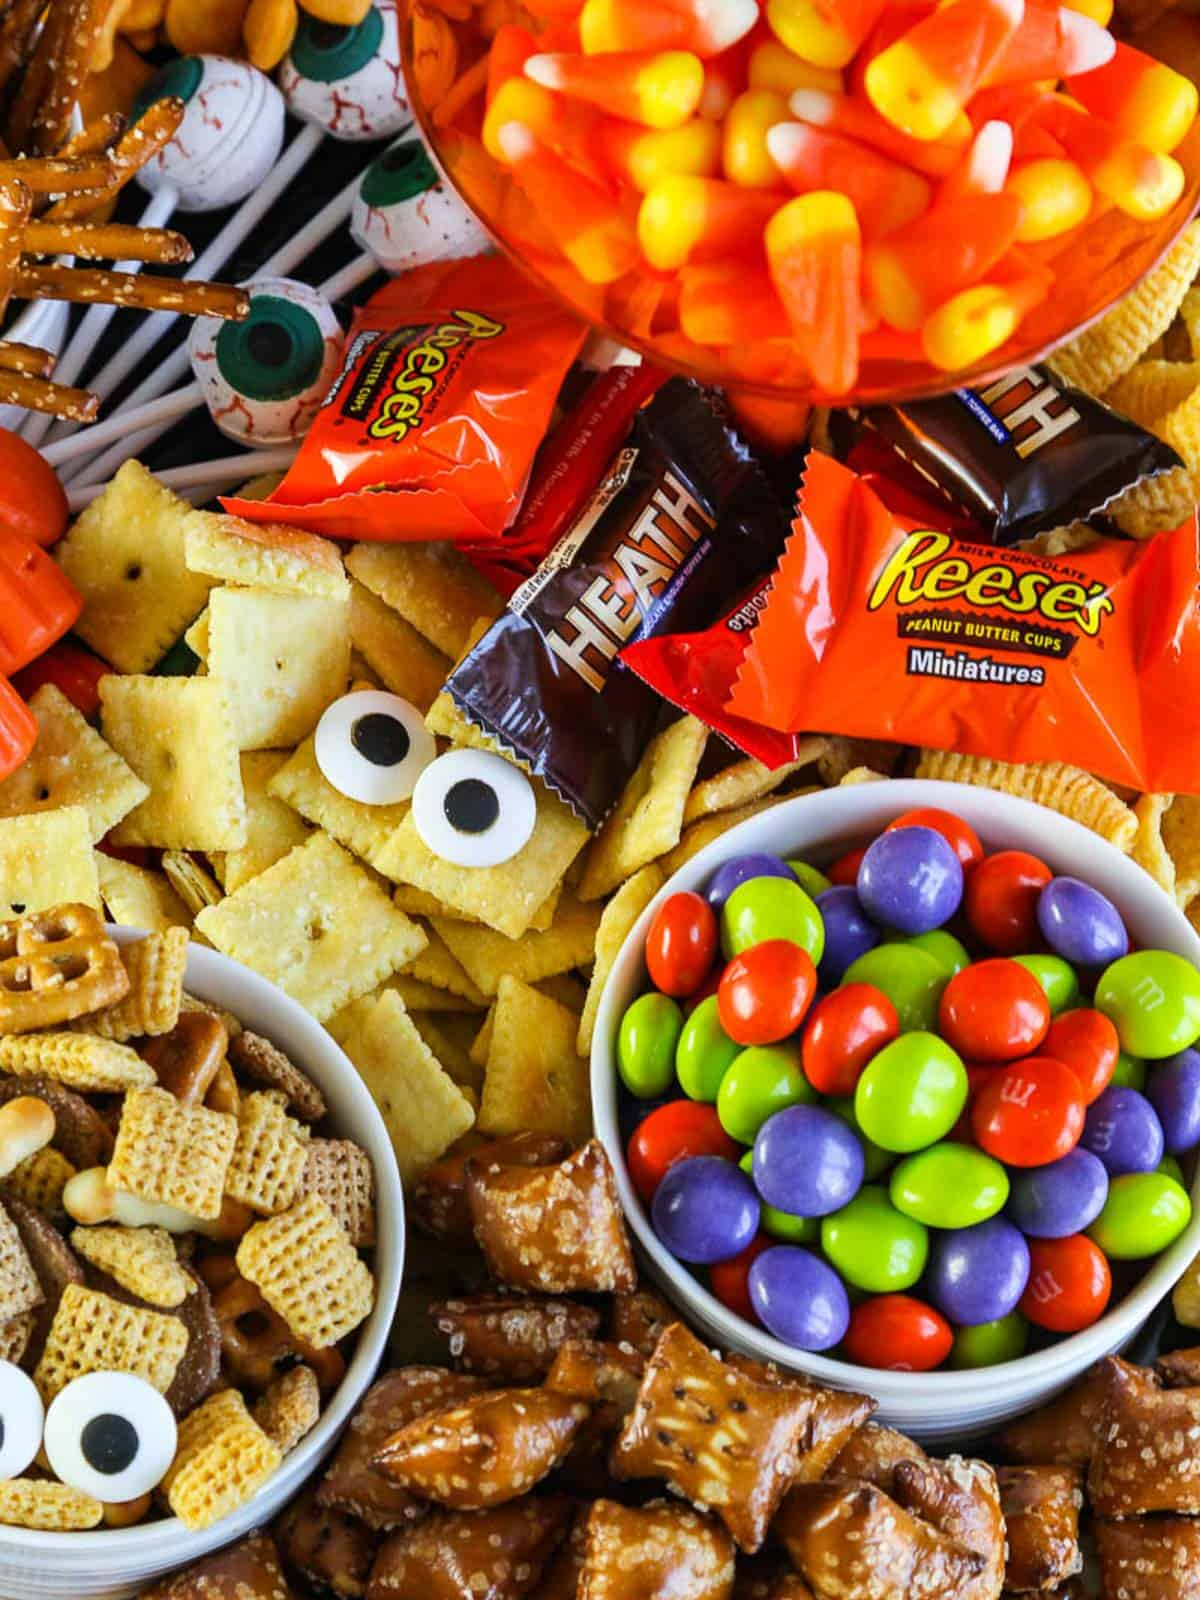 A variety of sweet and salty Halloween Snacks with candy eyeballs.